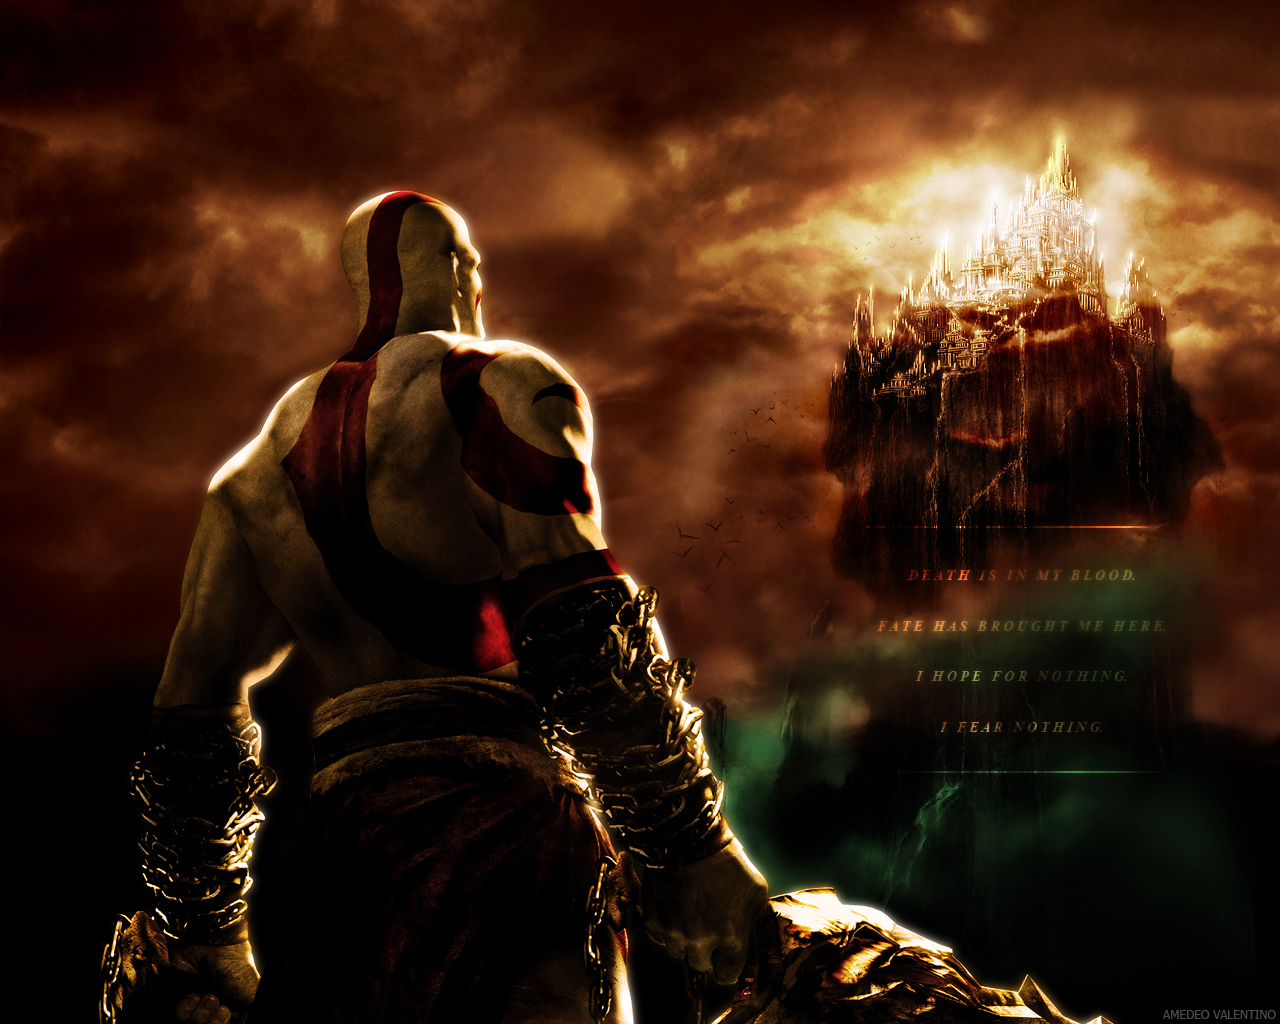 God Of War Images XGOD OF WARX HD Wallpaper And Background